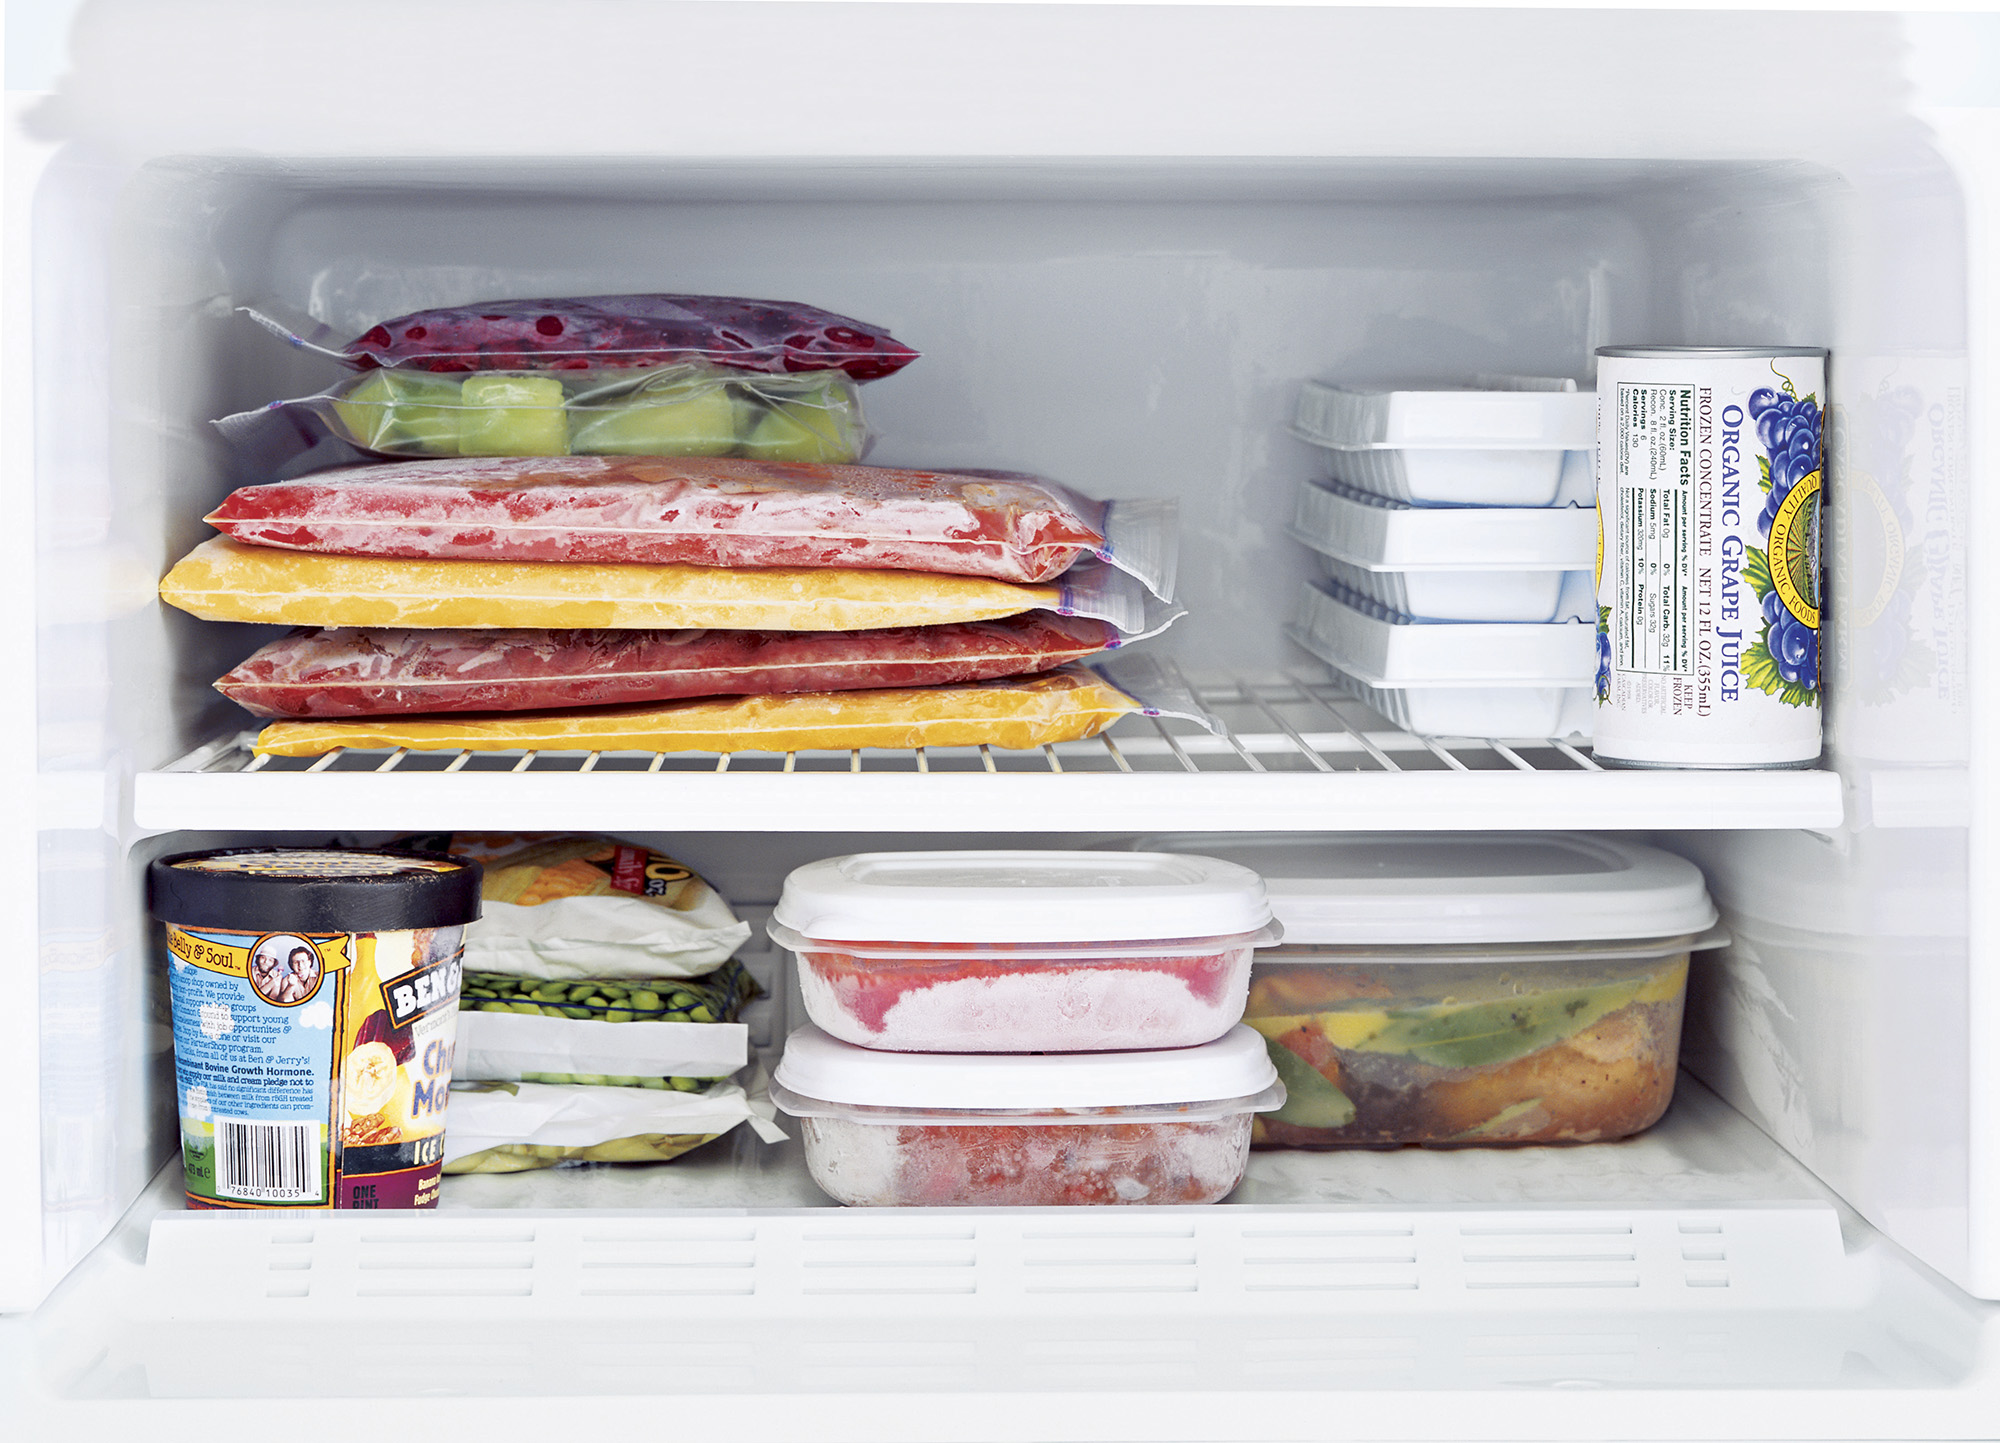 How many days can you keep cooked chicken in fridge